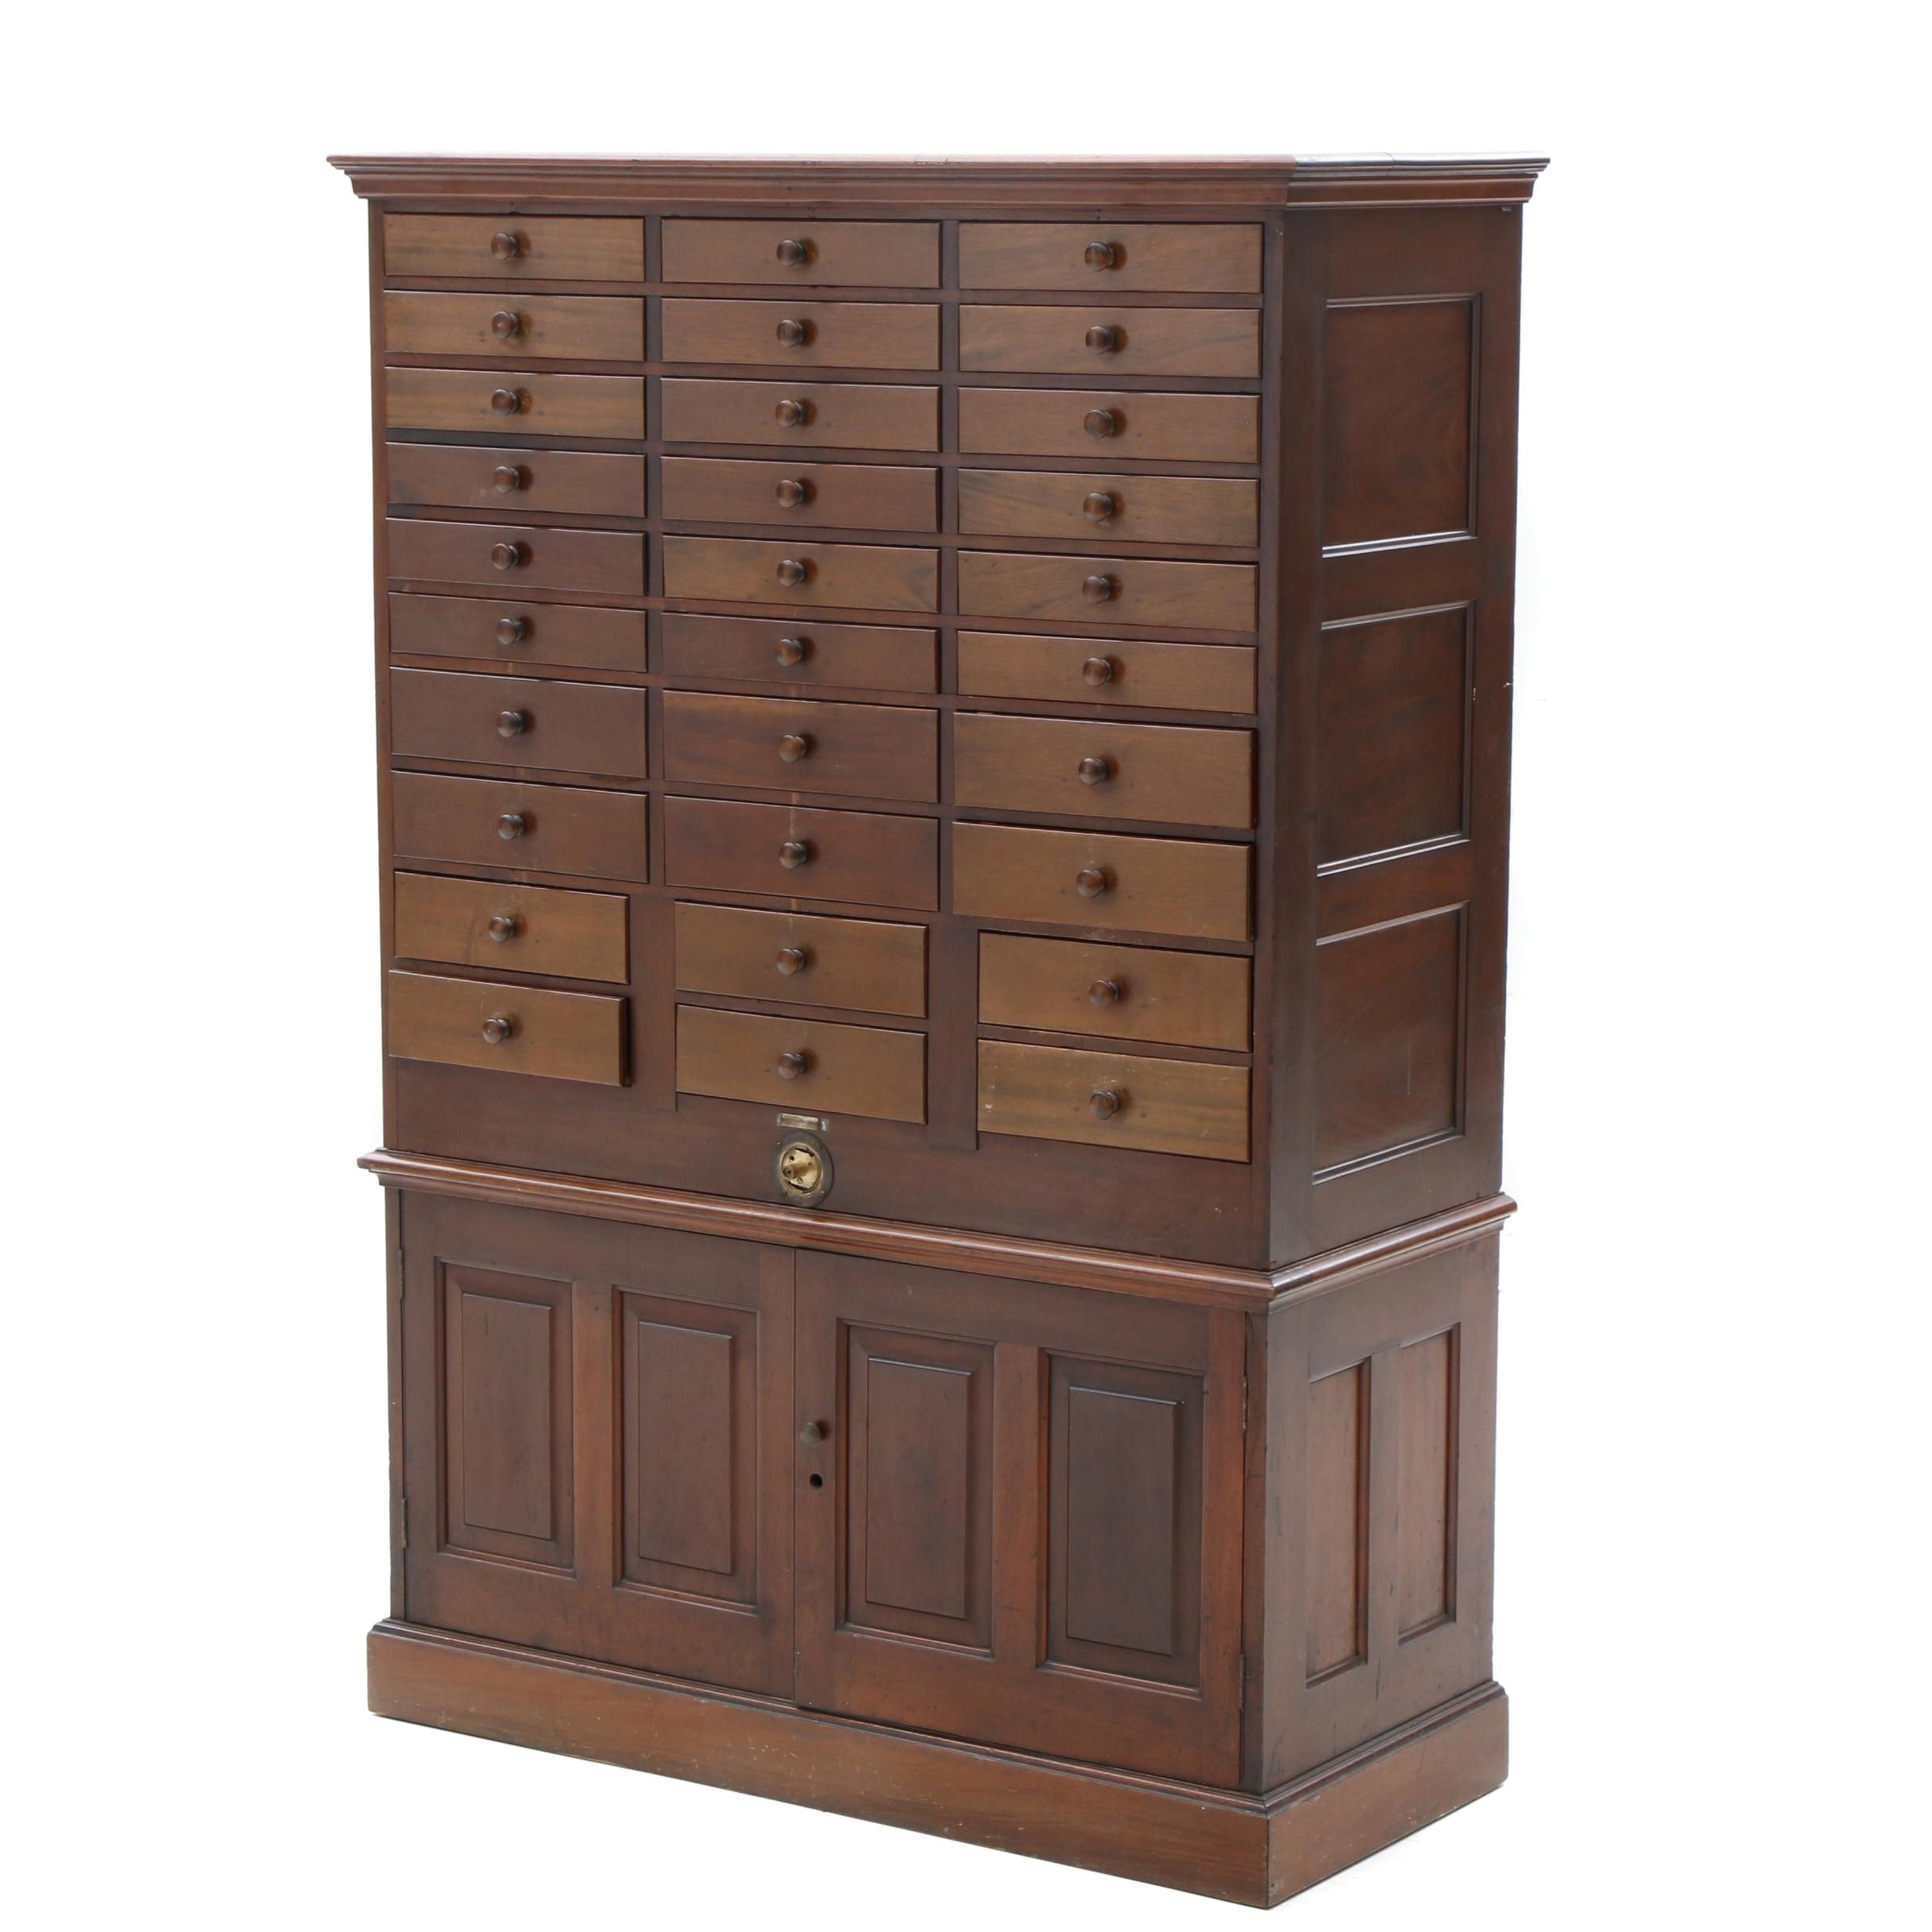 American Mahogany Office Storage Cabinet by Vetter Desk Works, 19th Century